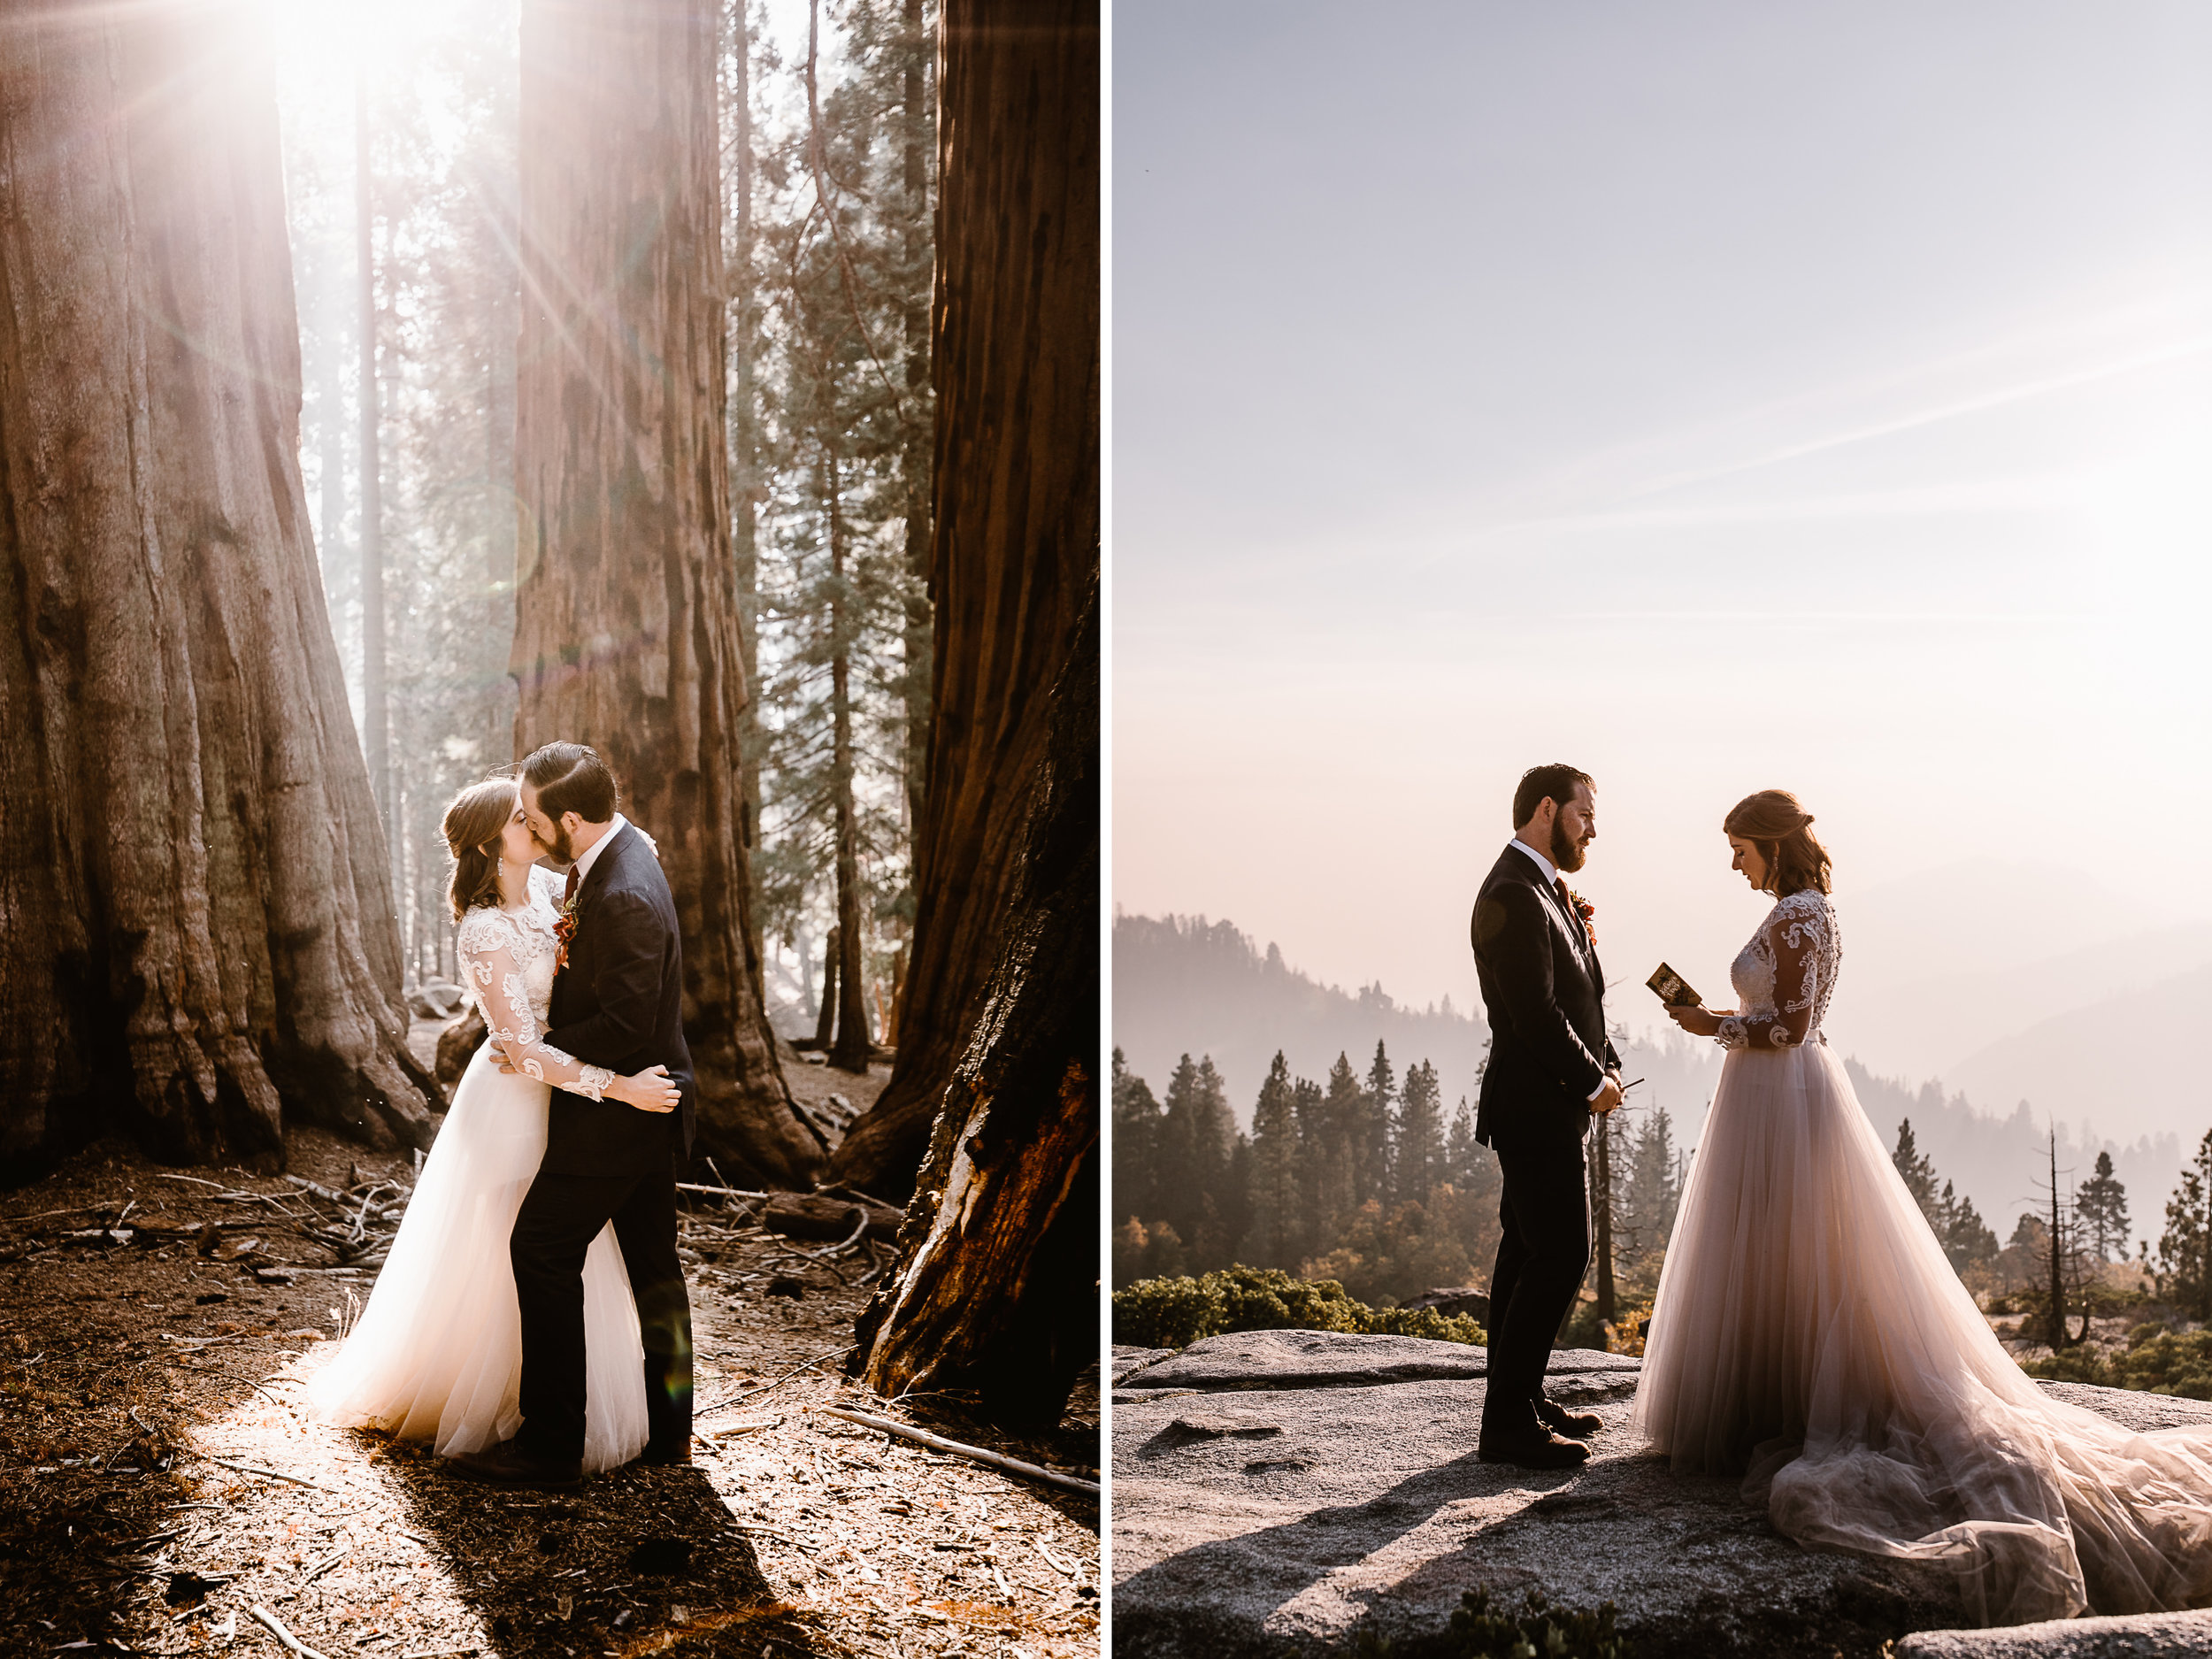 sequoia national park elopement wedding | adventure wedding in a forest | the hearnes adventure photography